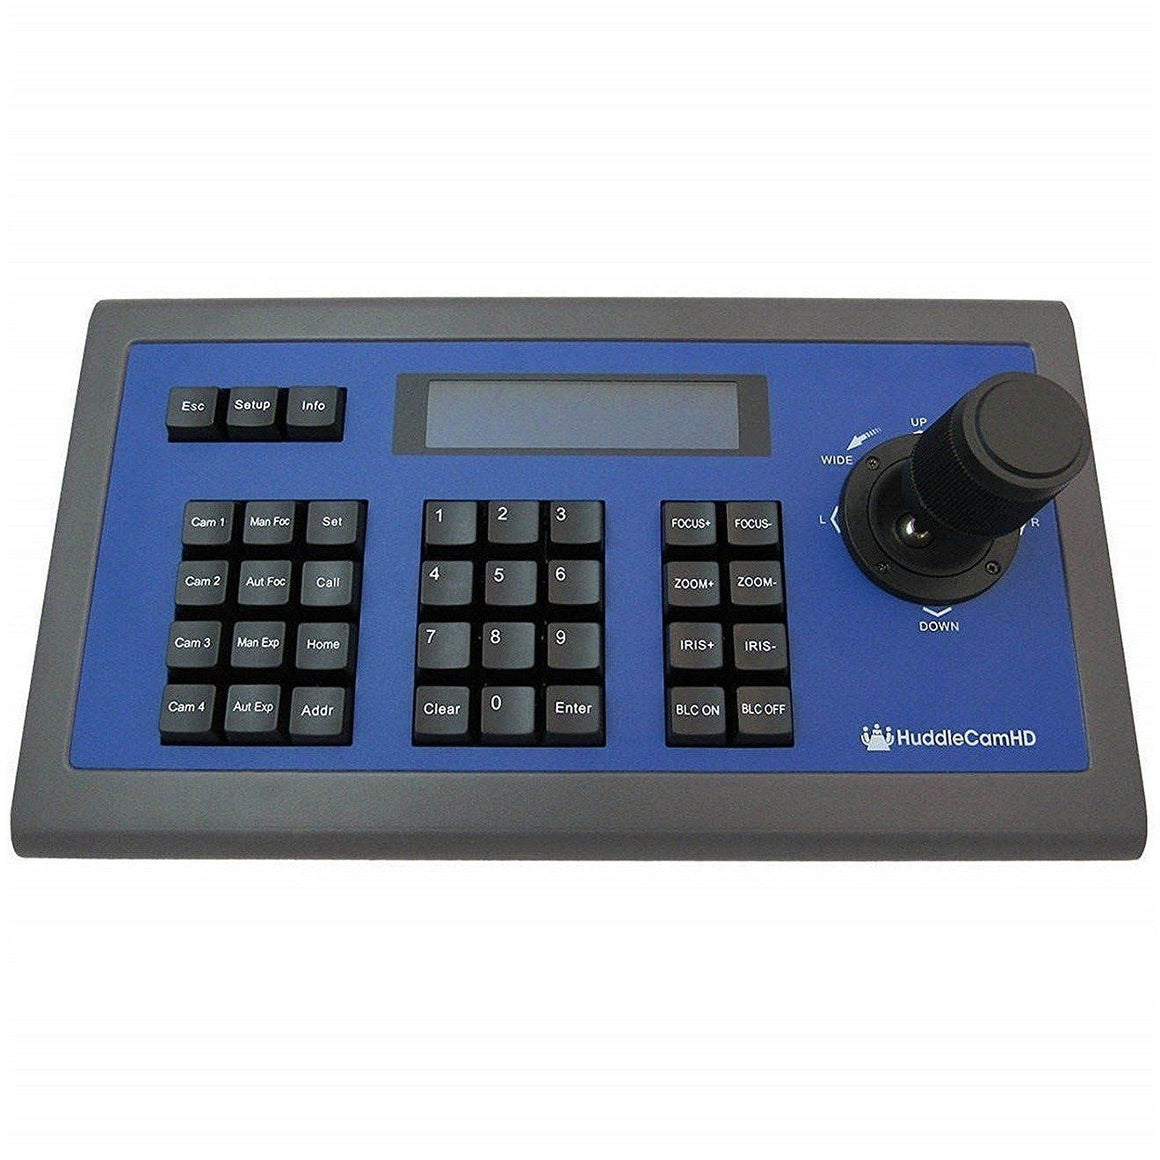 HuddleCamHD Joystick Camera Keyboard Controller - Wholesale Home Improvement Products